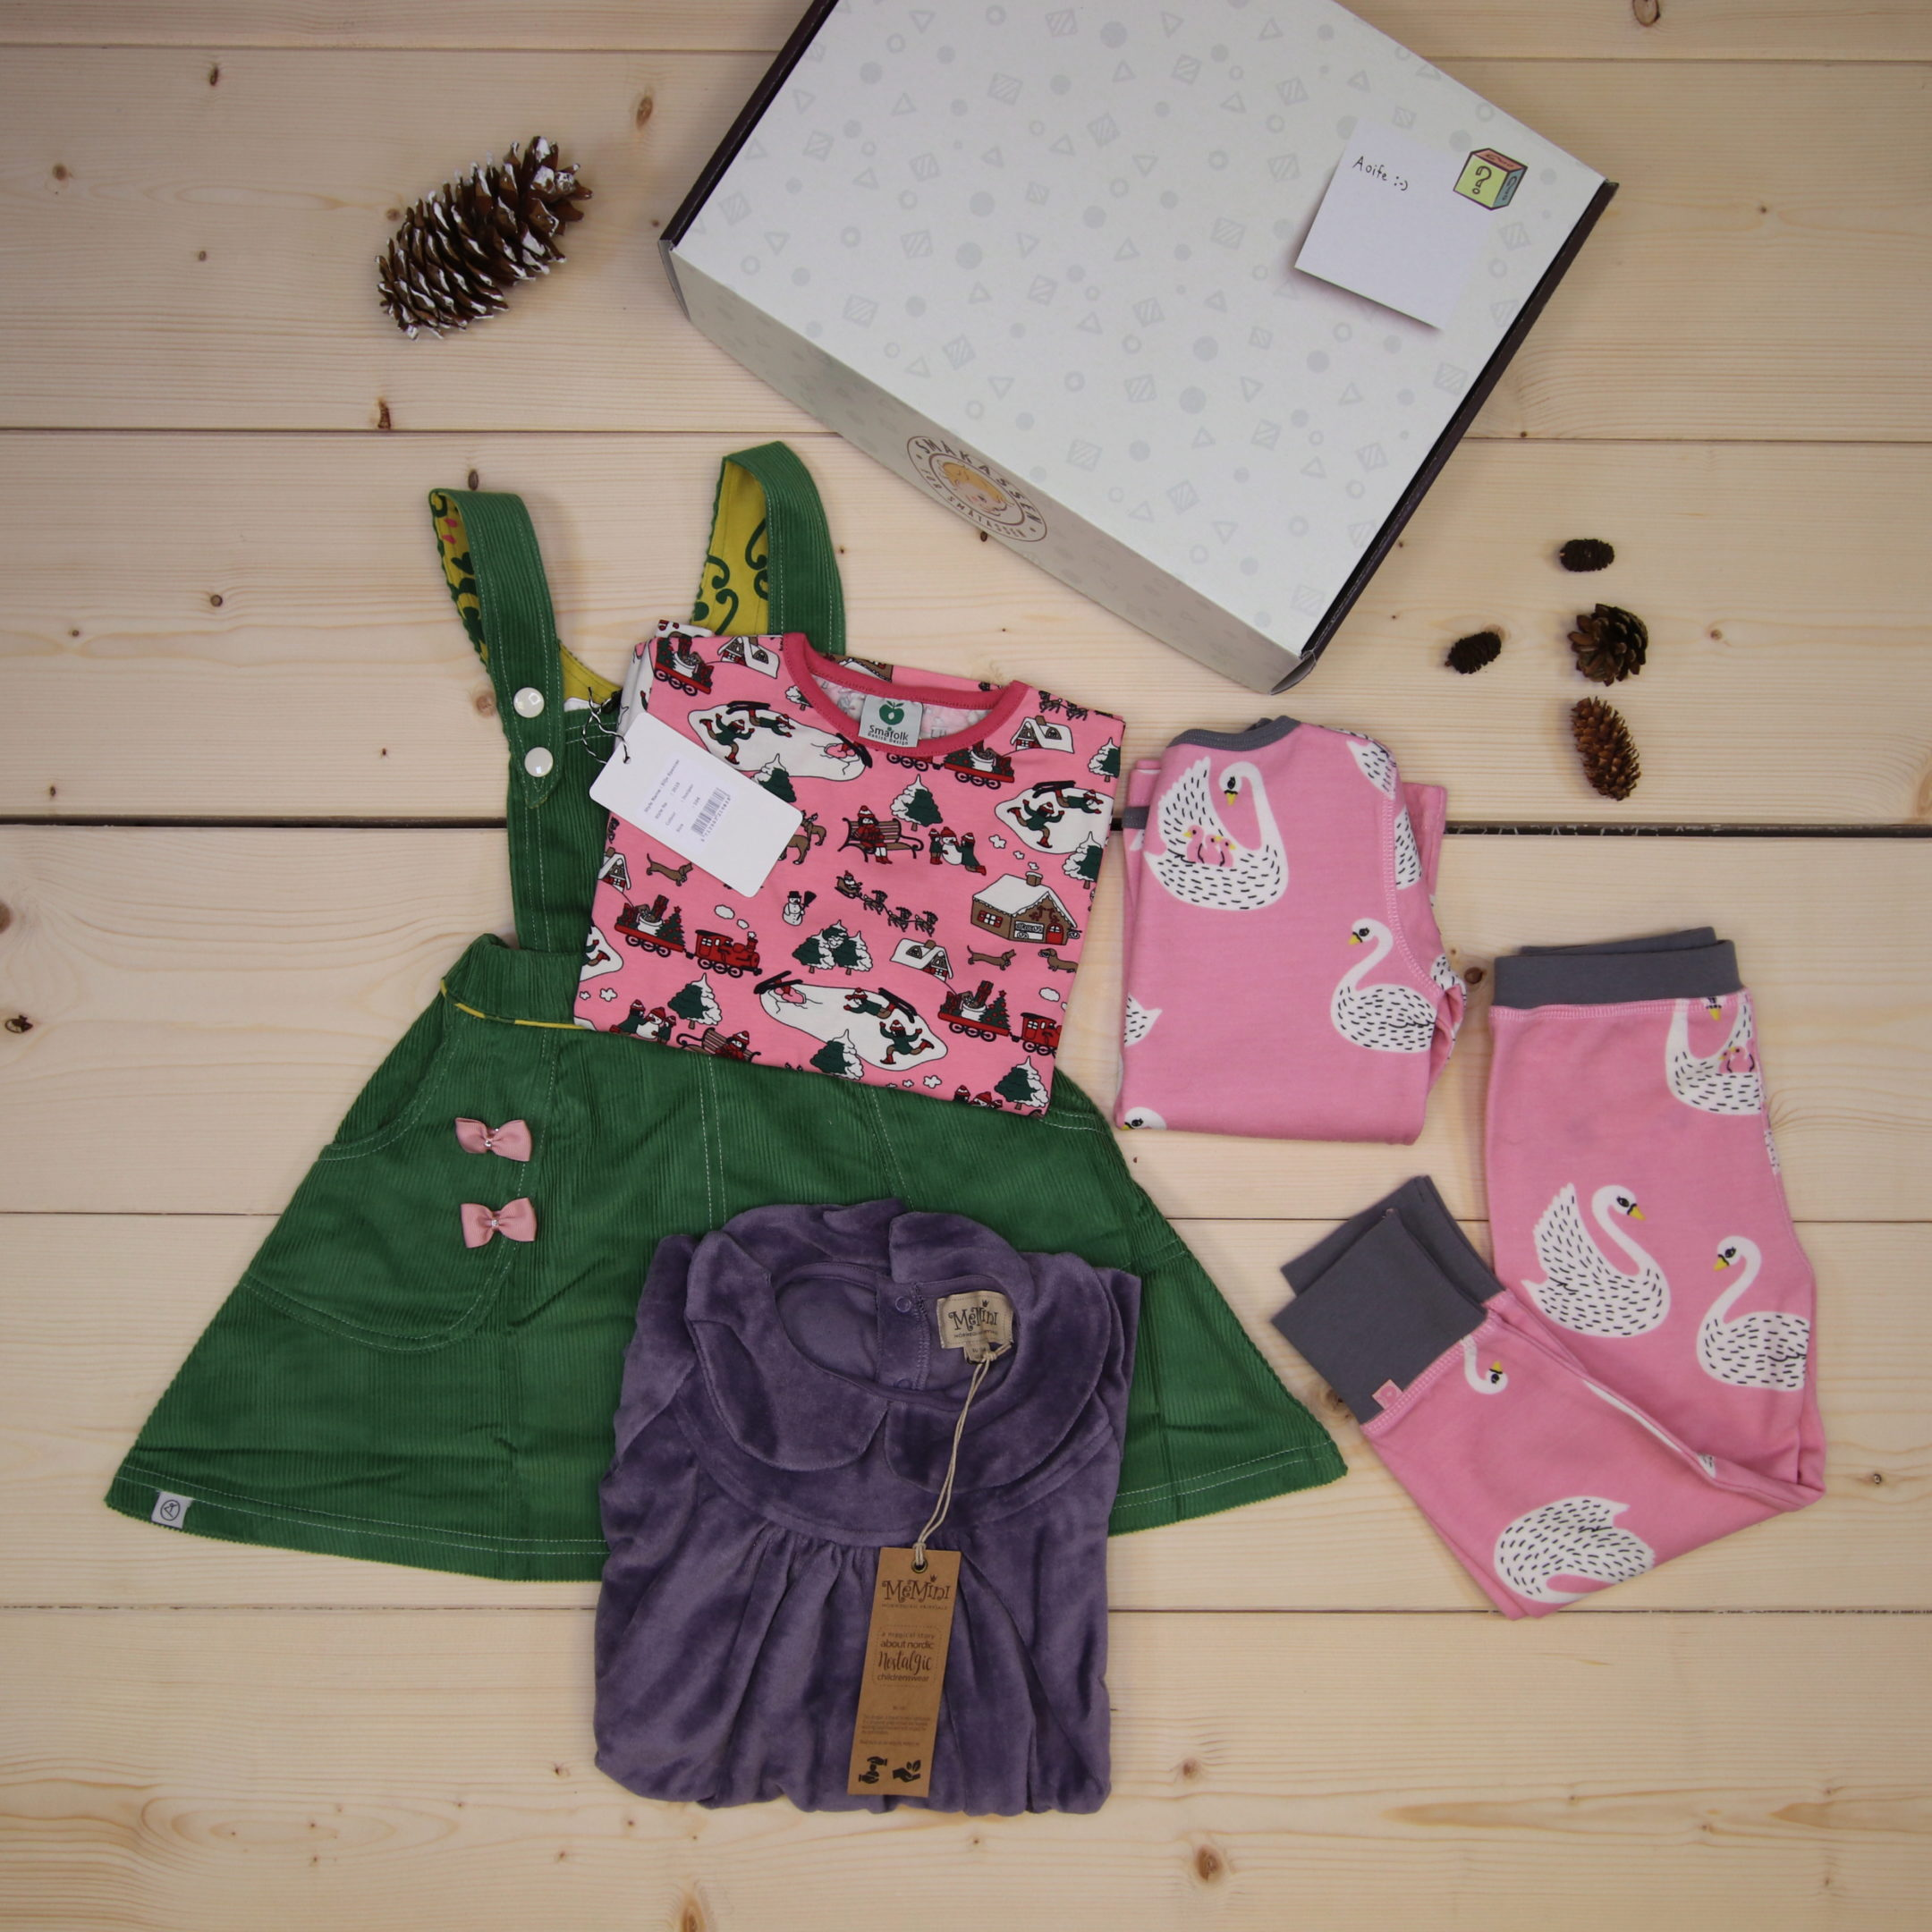 This is a 166 GBP* Småkassen that we prepared for a girl  in the styles cute, cool, and colorful in size 104